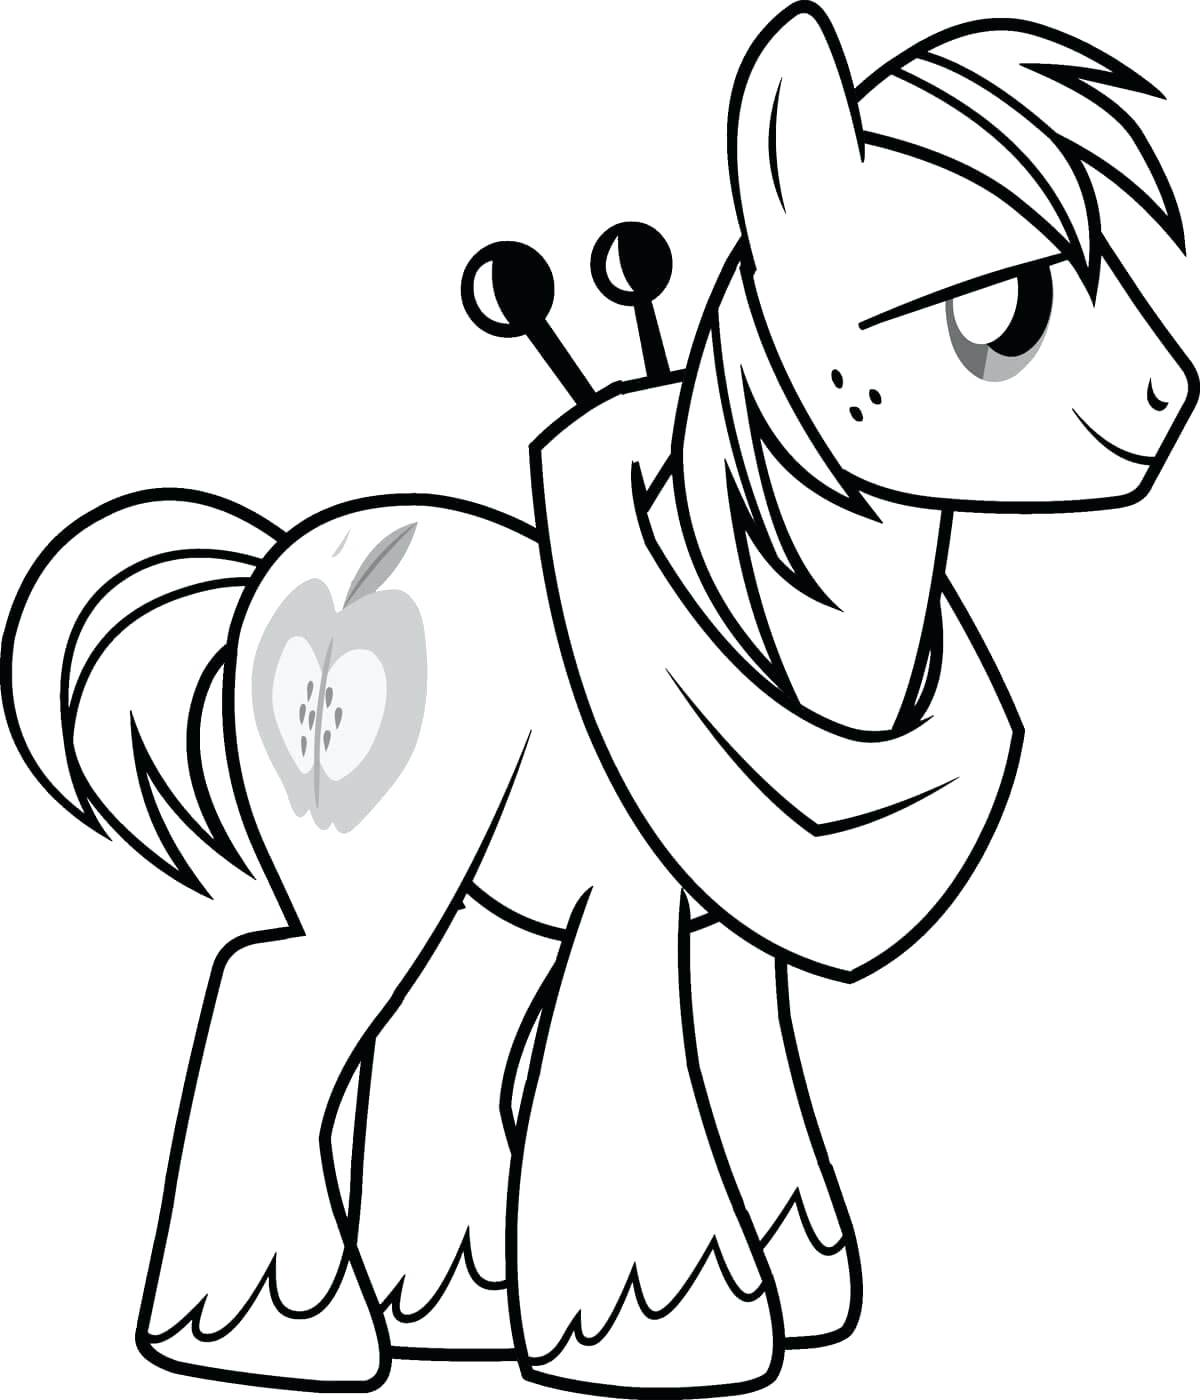 Pony Coloring Pages | Free download best Pony Coloring Pages on ...